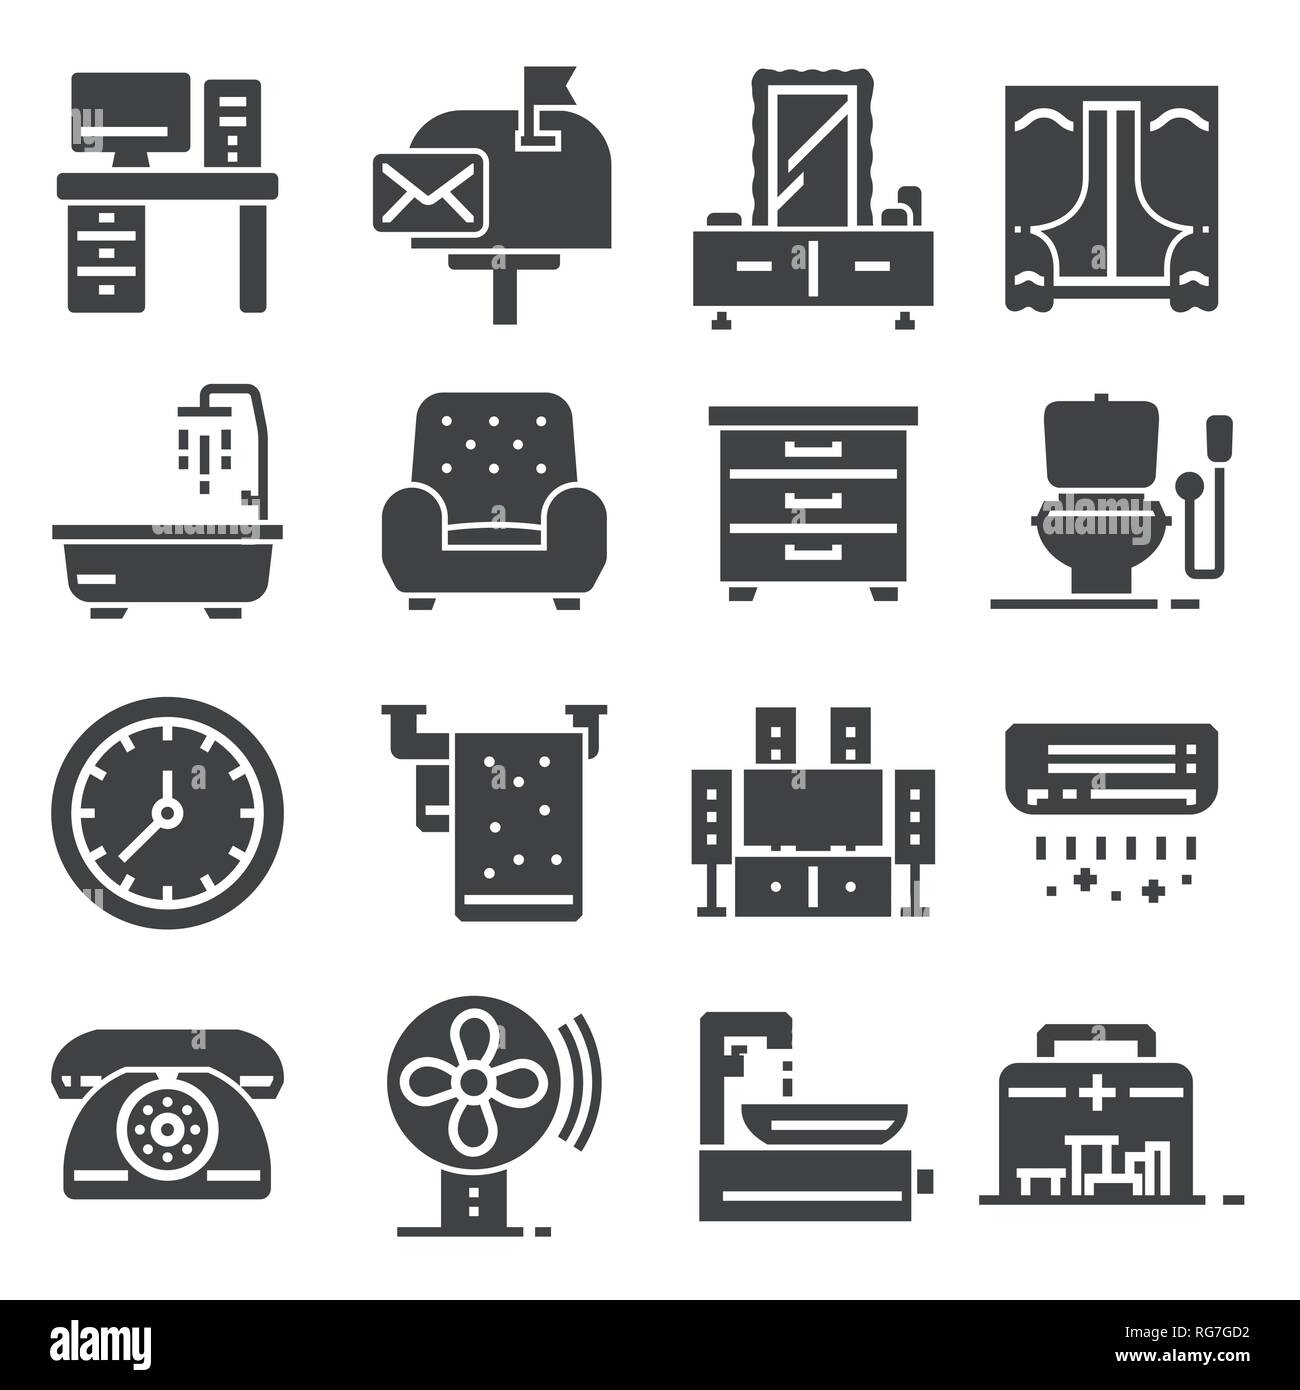 Furniture and home decor icon set. Vector illustration Stock